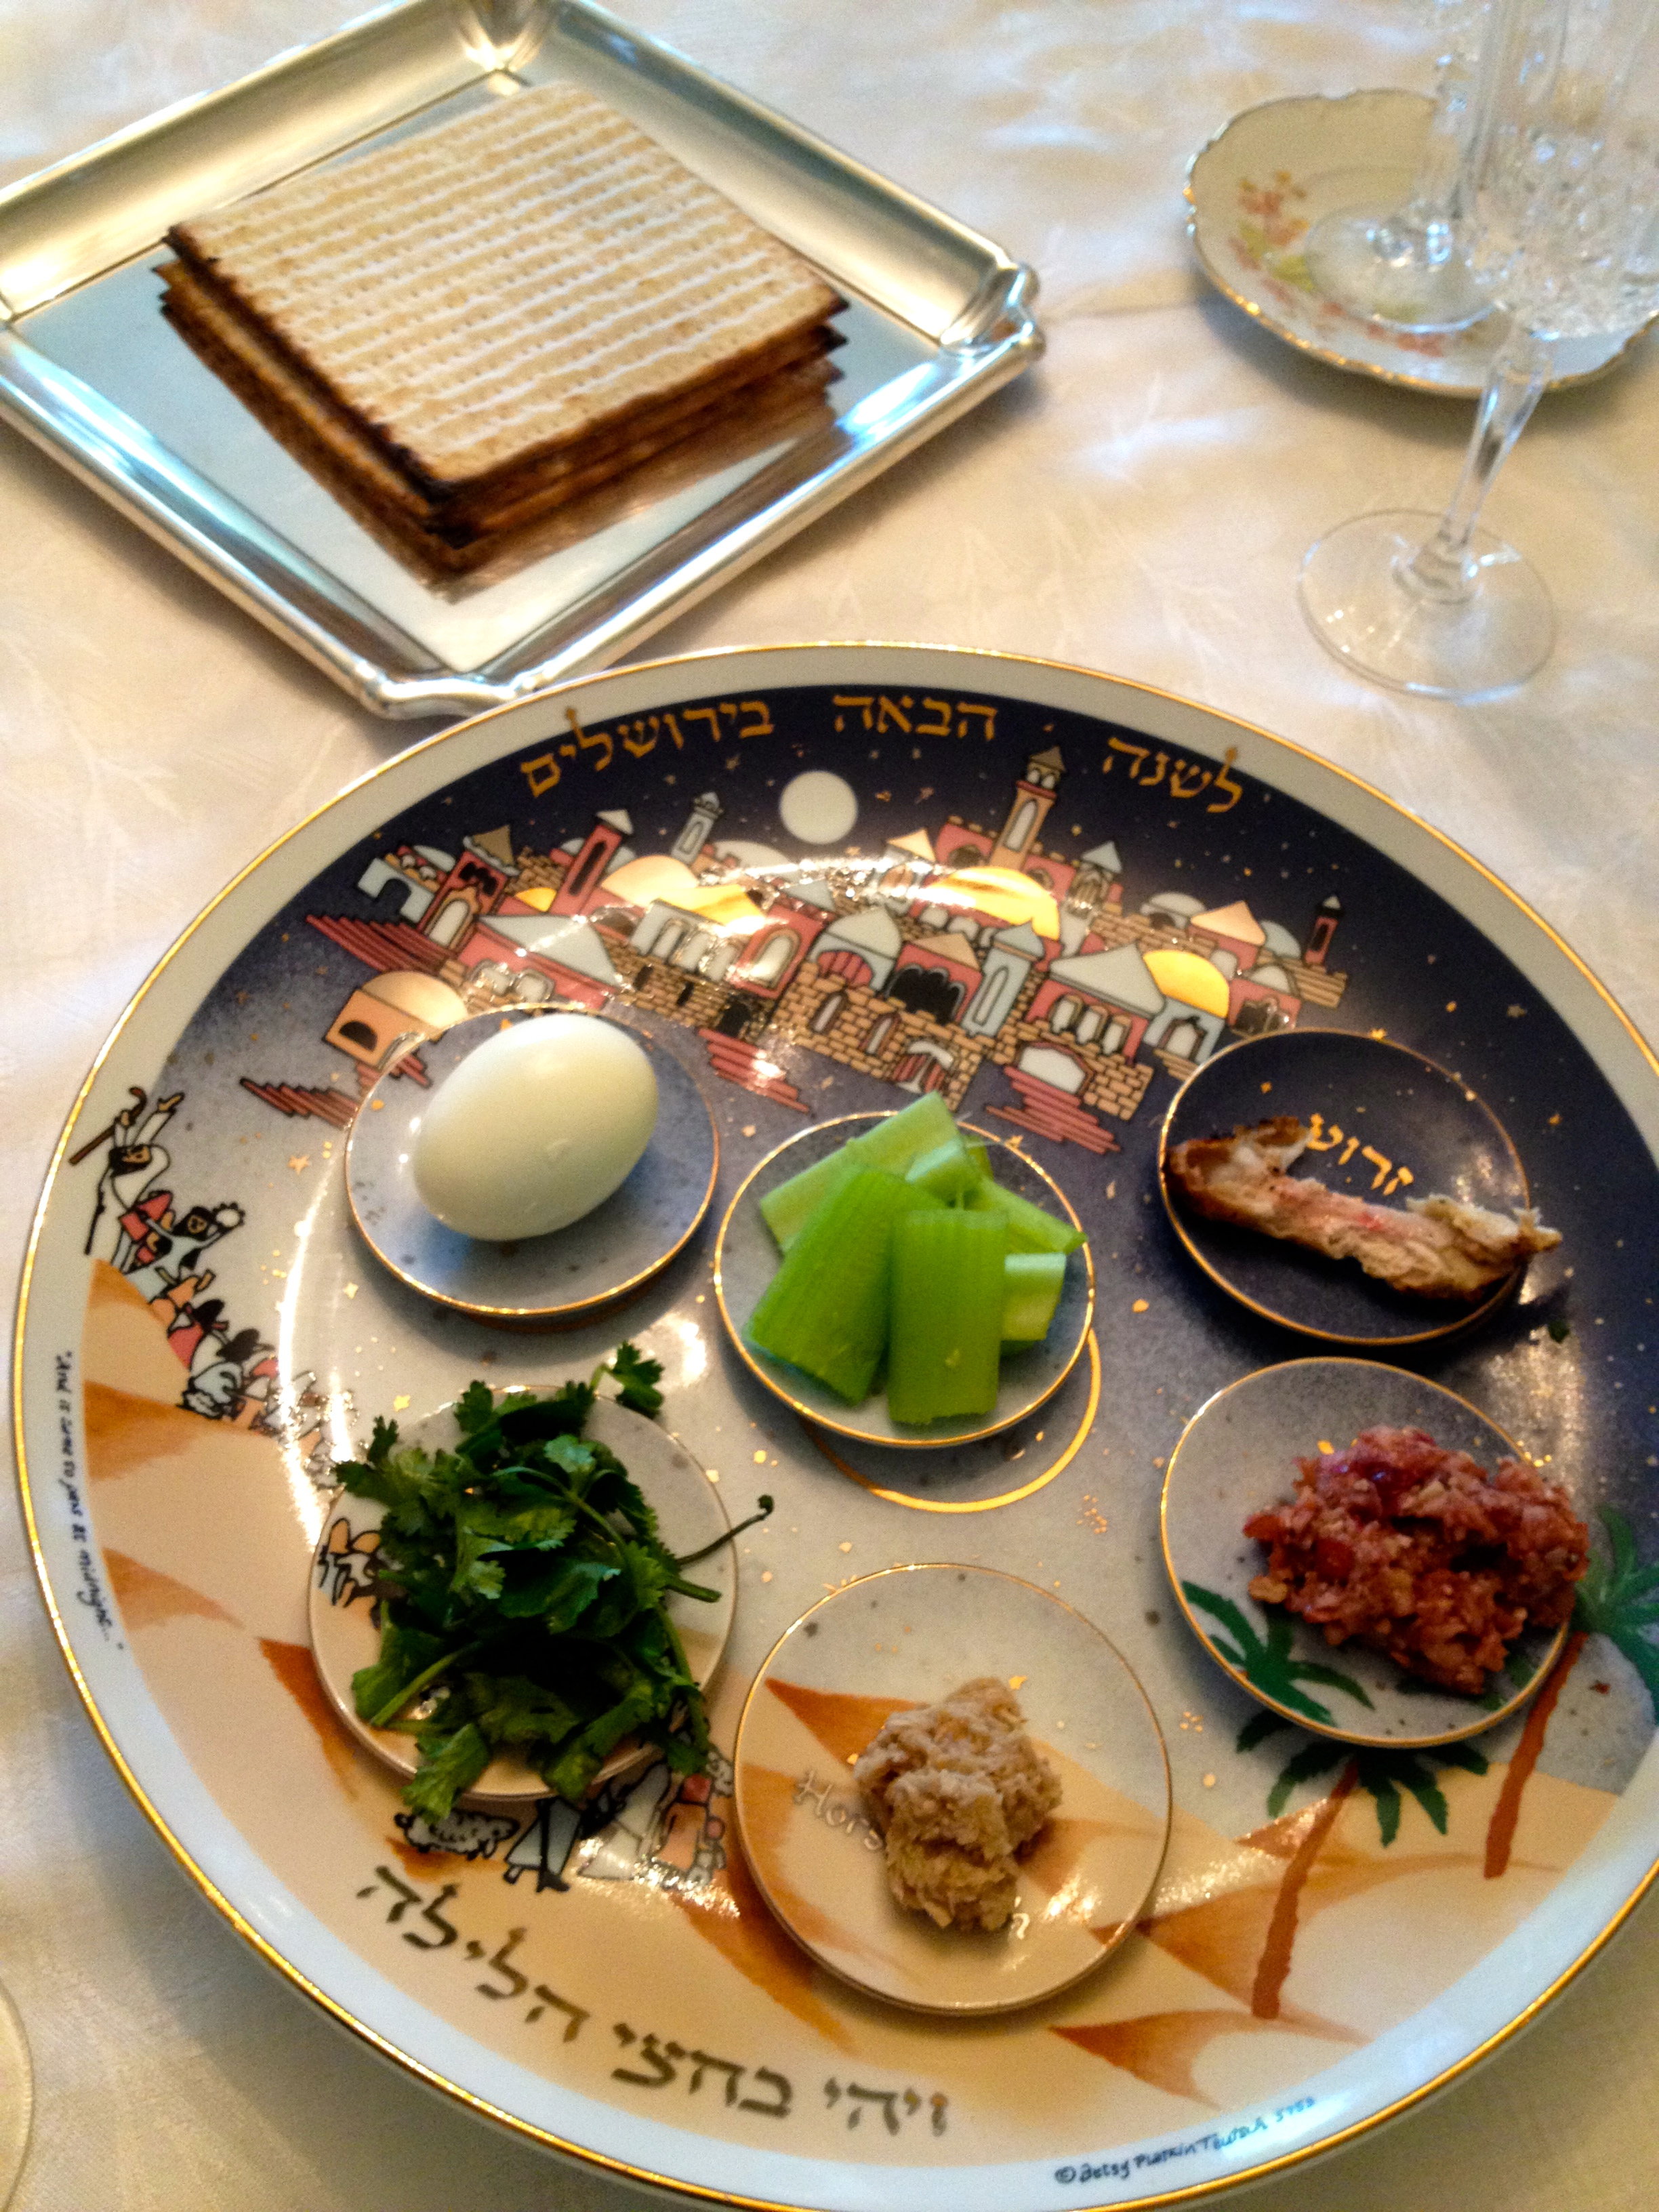 Now That S A Good Lookin Seder Plate